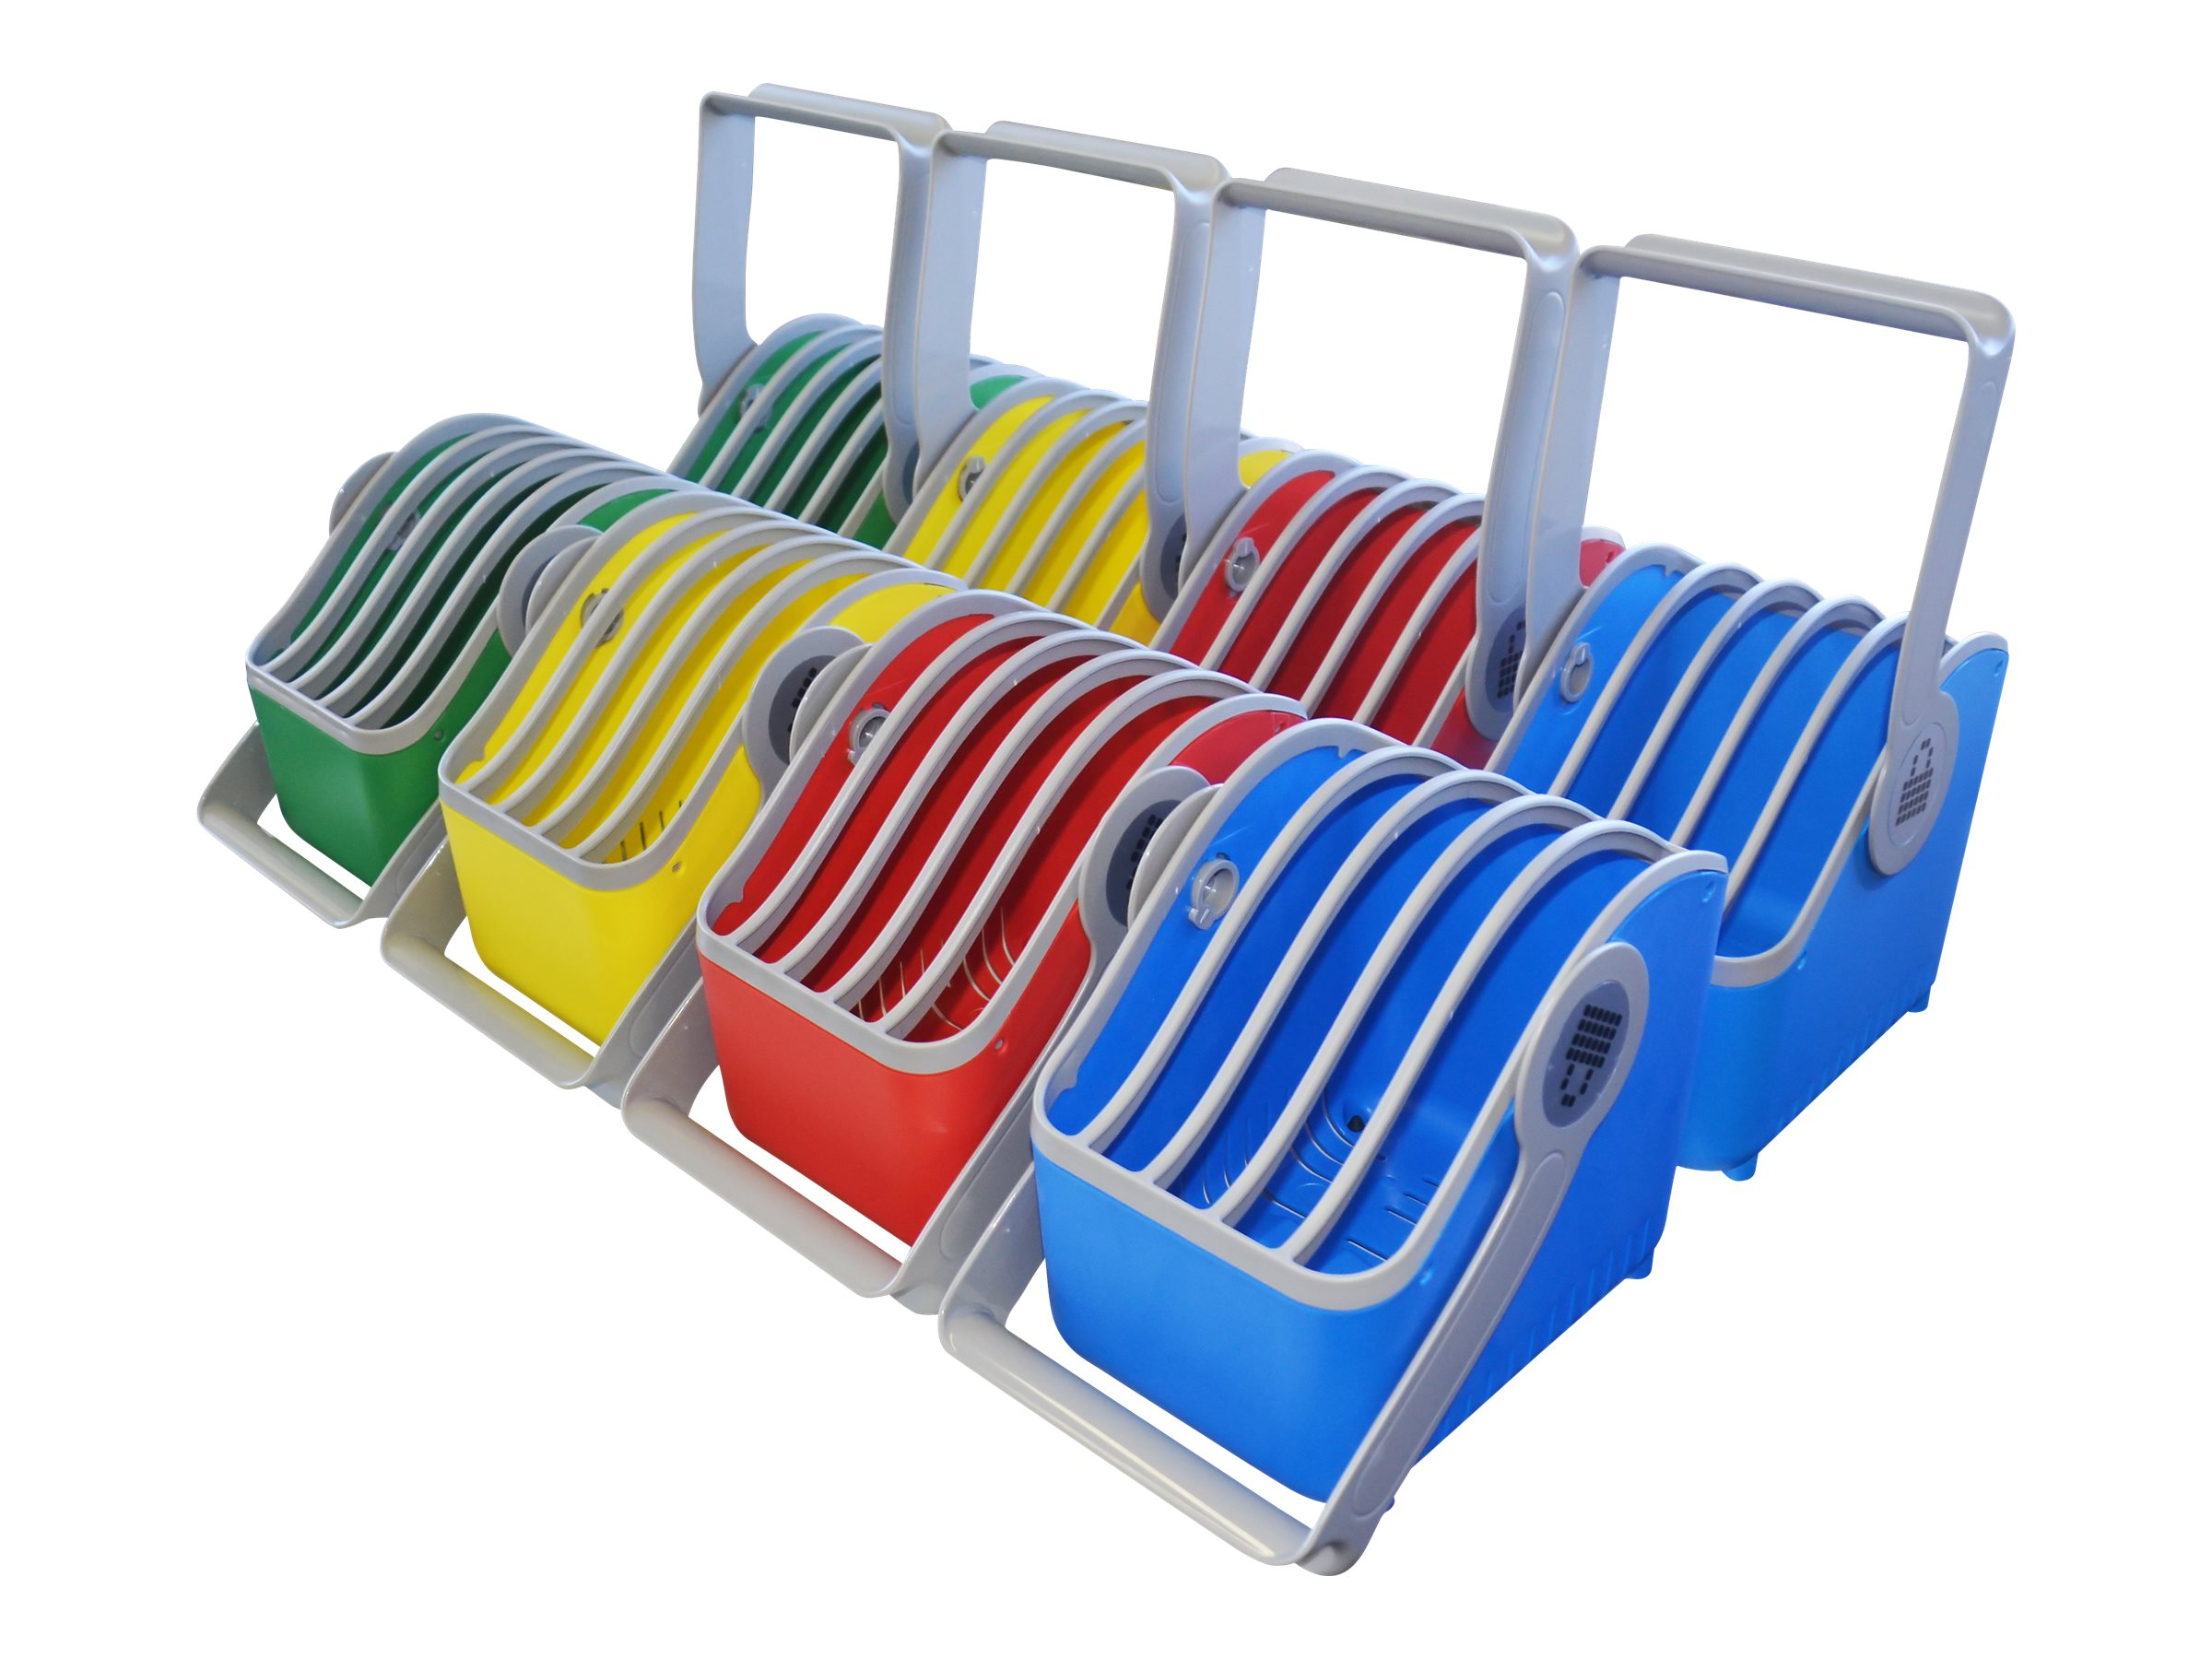 Lock N Charge Plastic 5 Slot Device Basket, LNC0096, 17657287, Cart & Wall Station Accessories